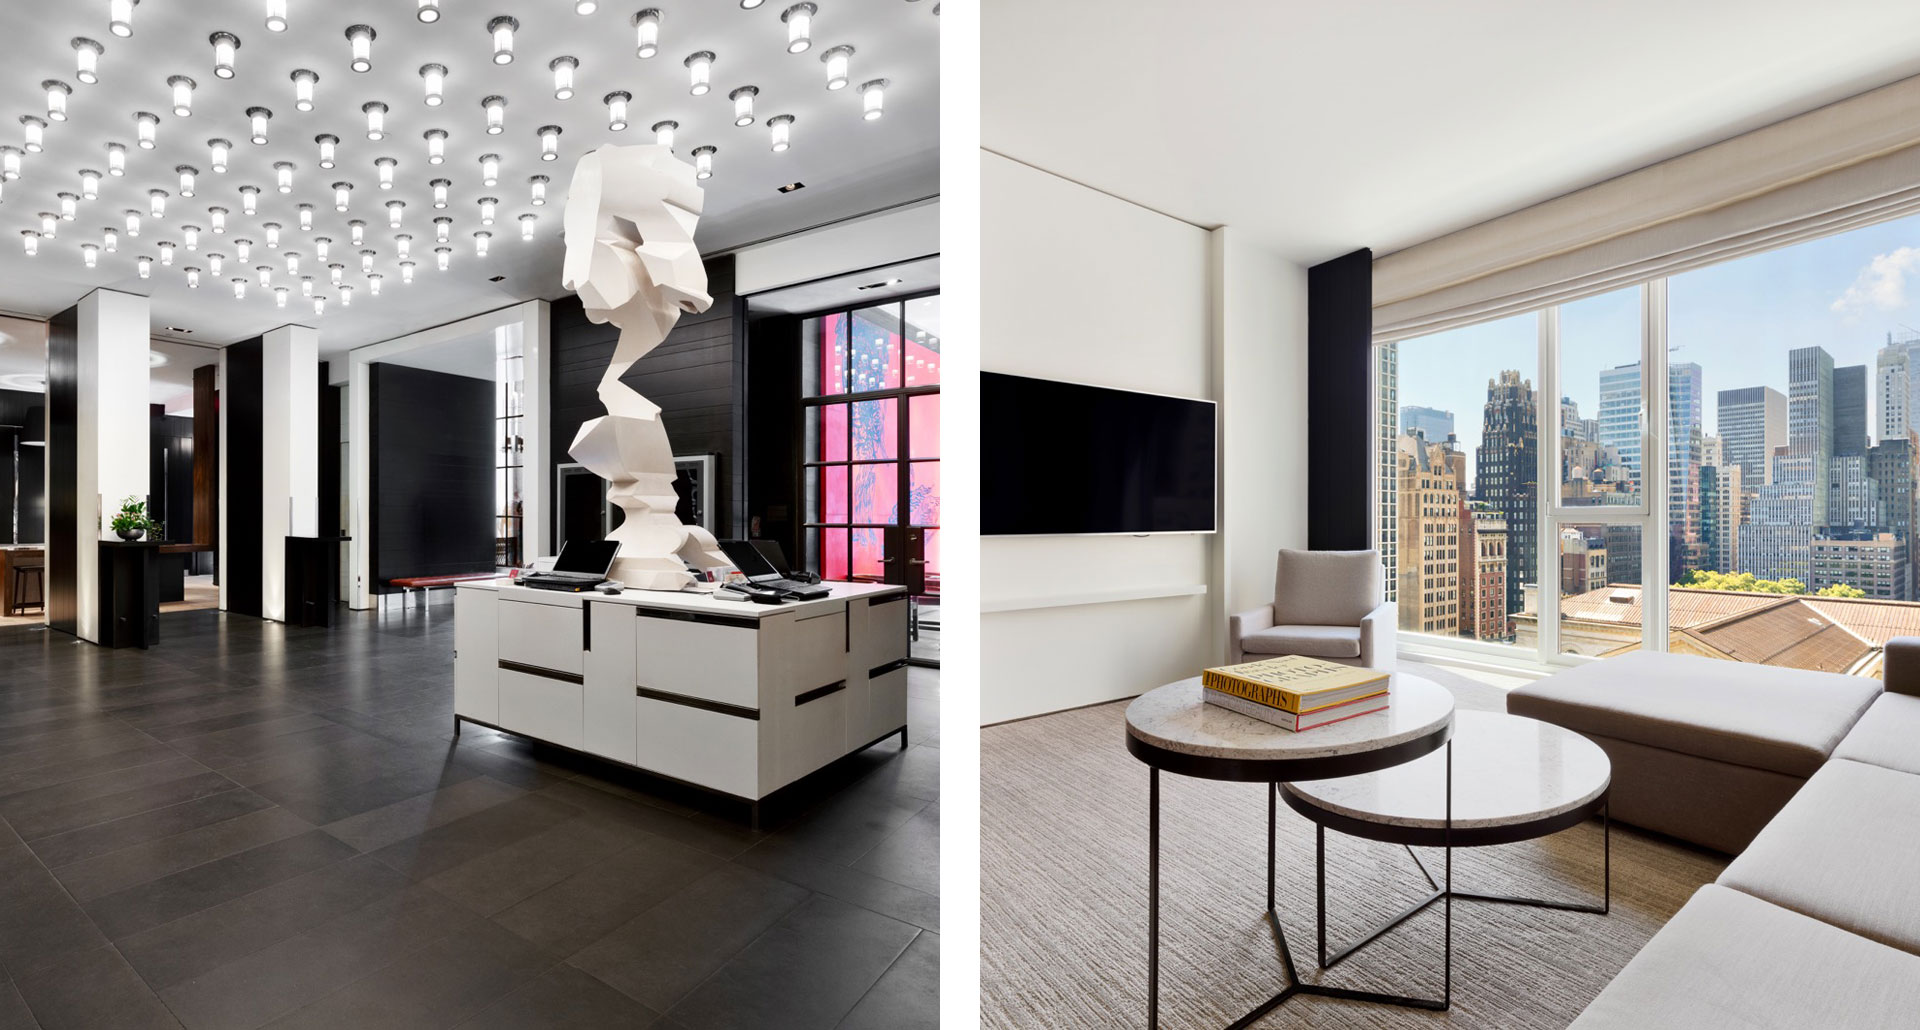 Andaz 5th Avenue - boutique hotel in New York